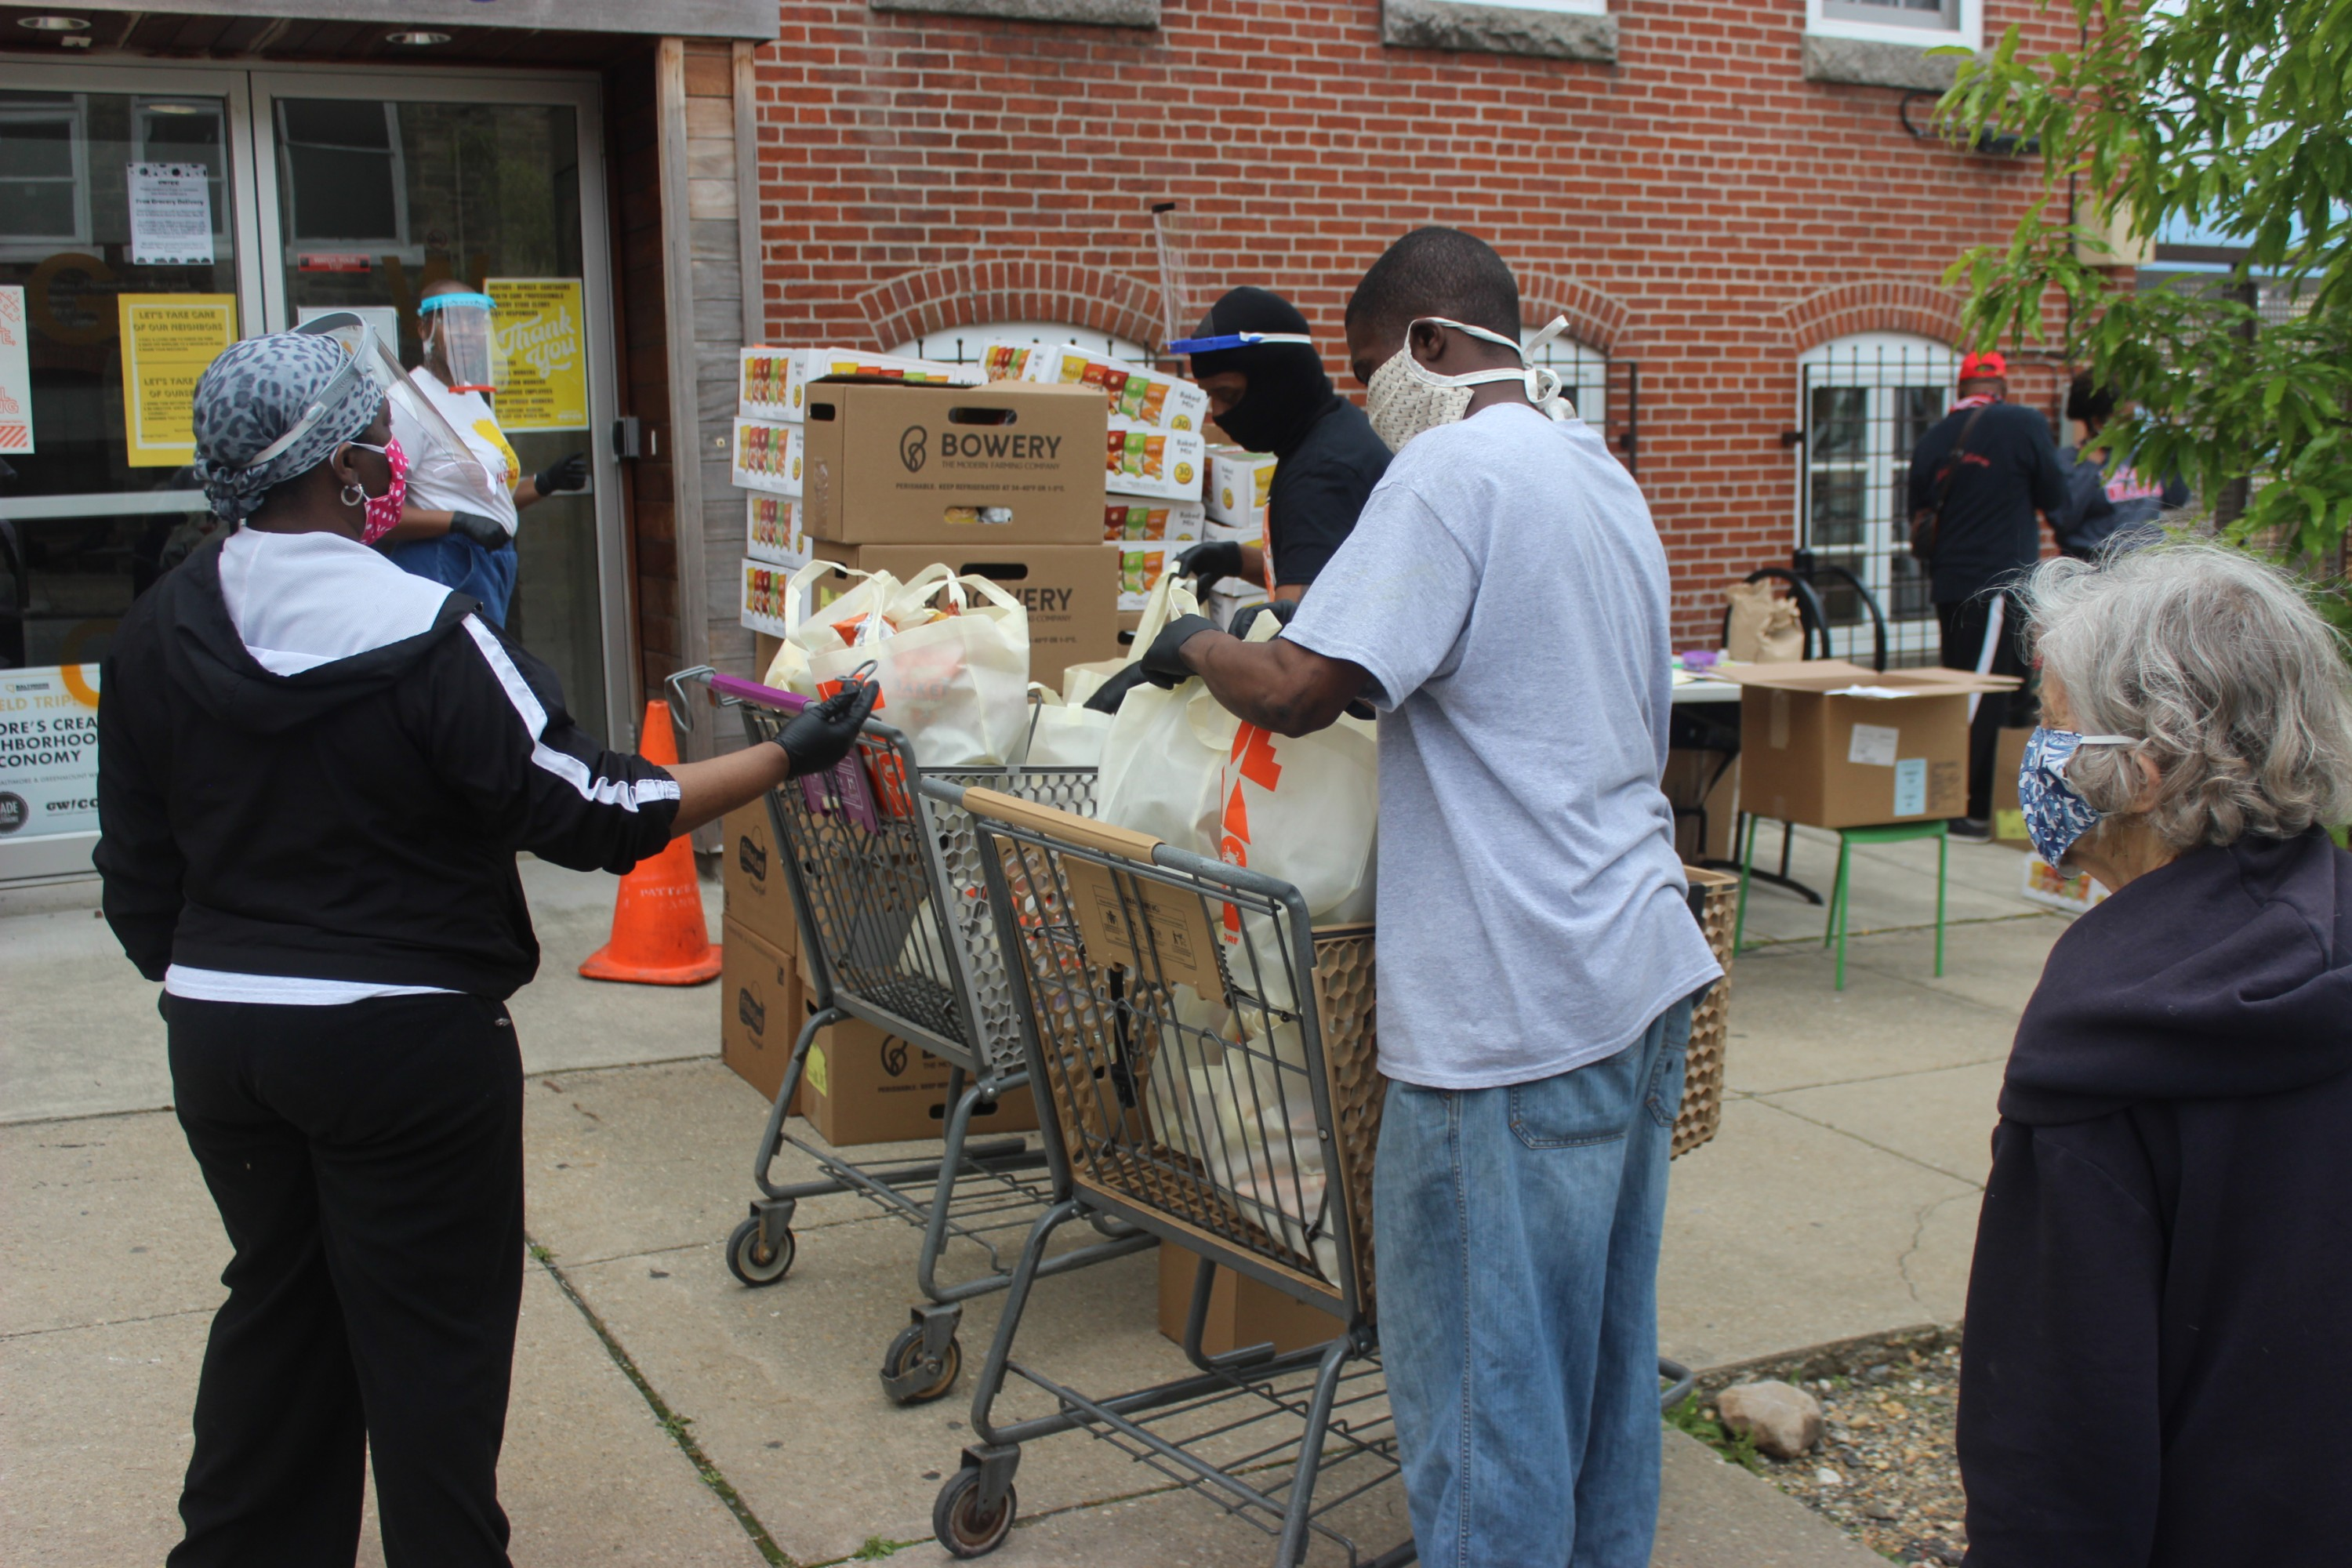 Residents in the Greenmount West community pick up boxes of donated food at the weekly Food Distribution program that the Greenmount West Community Center (GWCC) immediately set up when the pandemic began in March 2020.